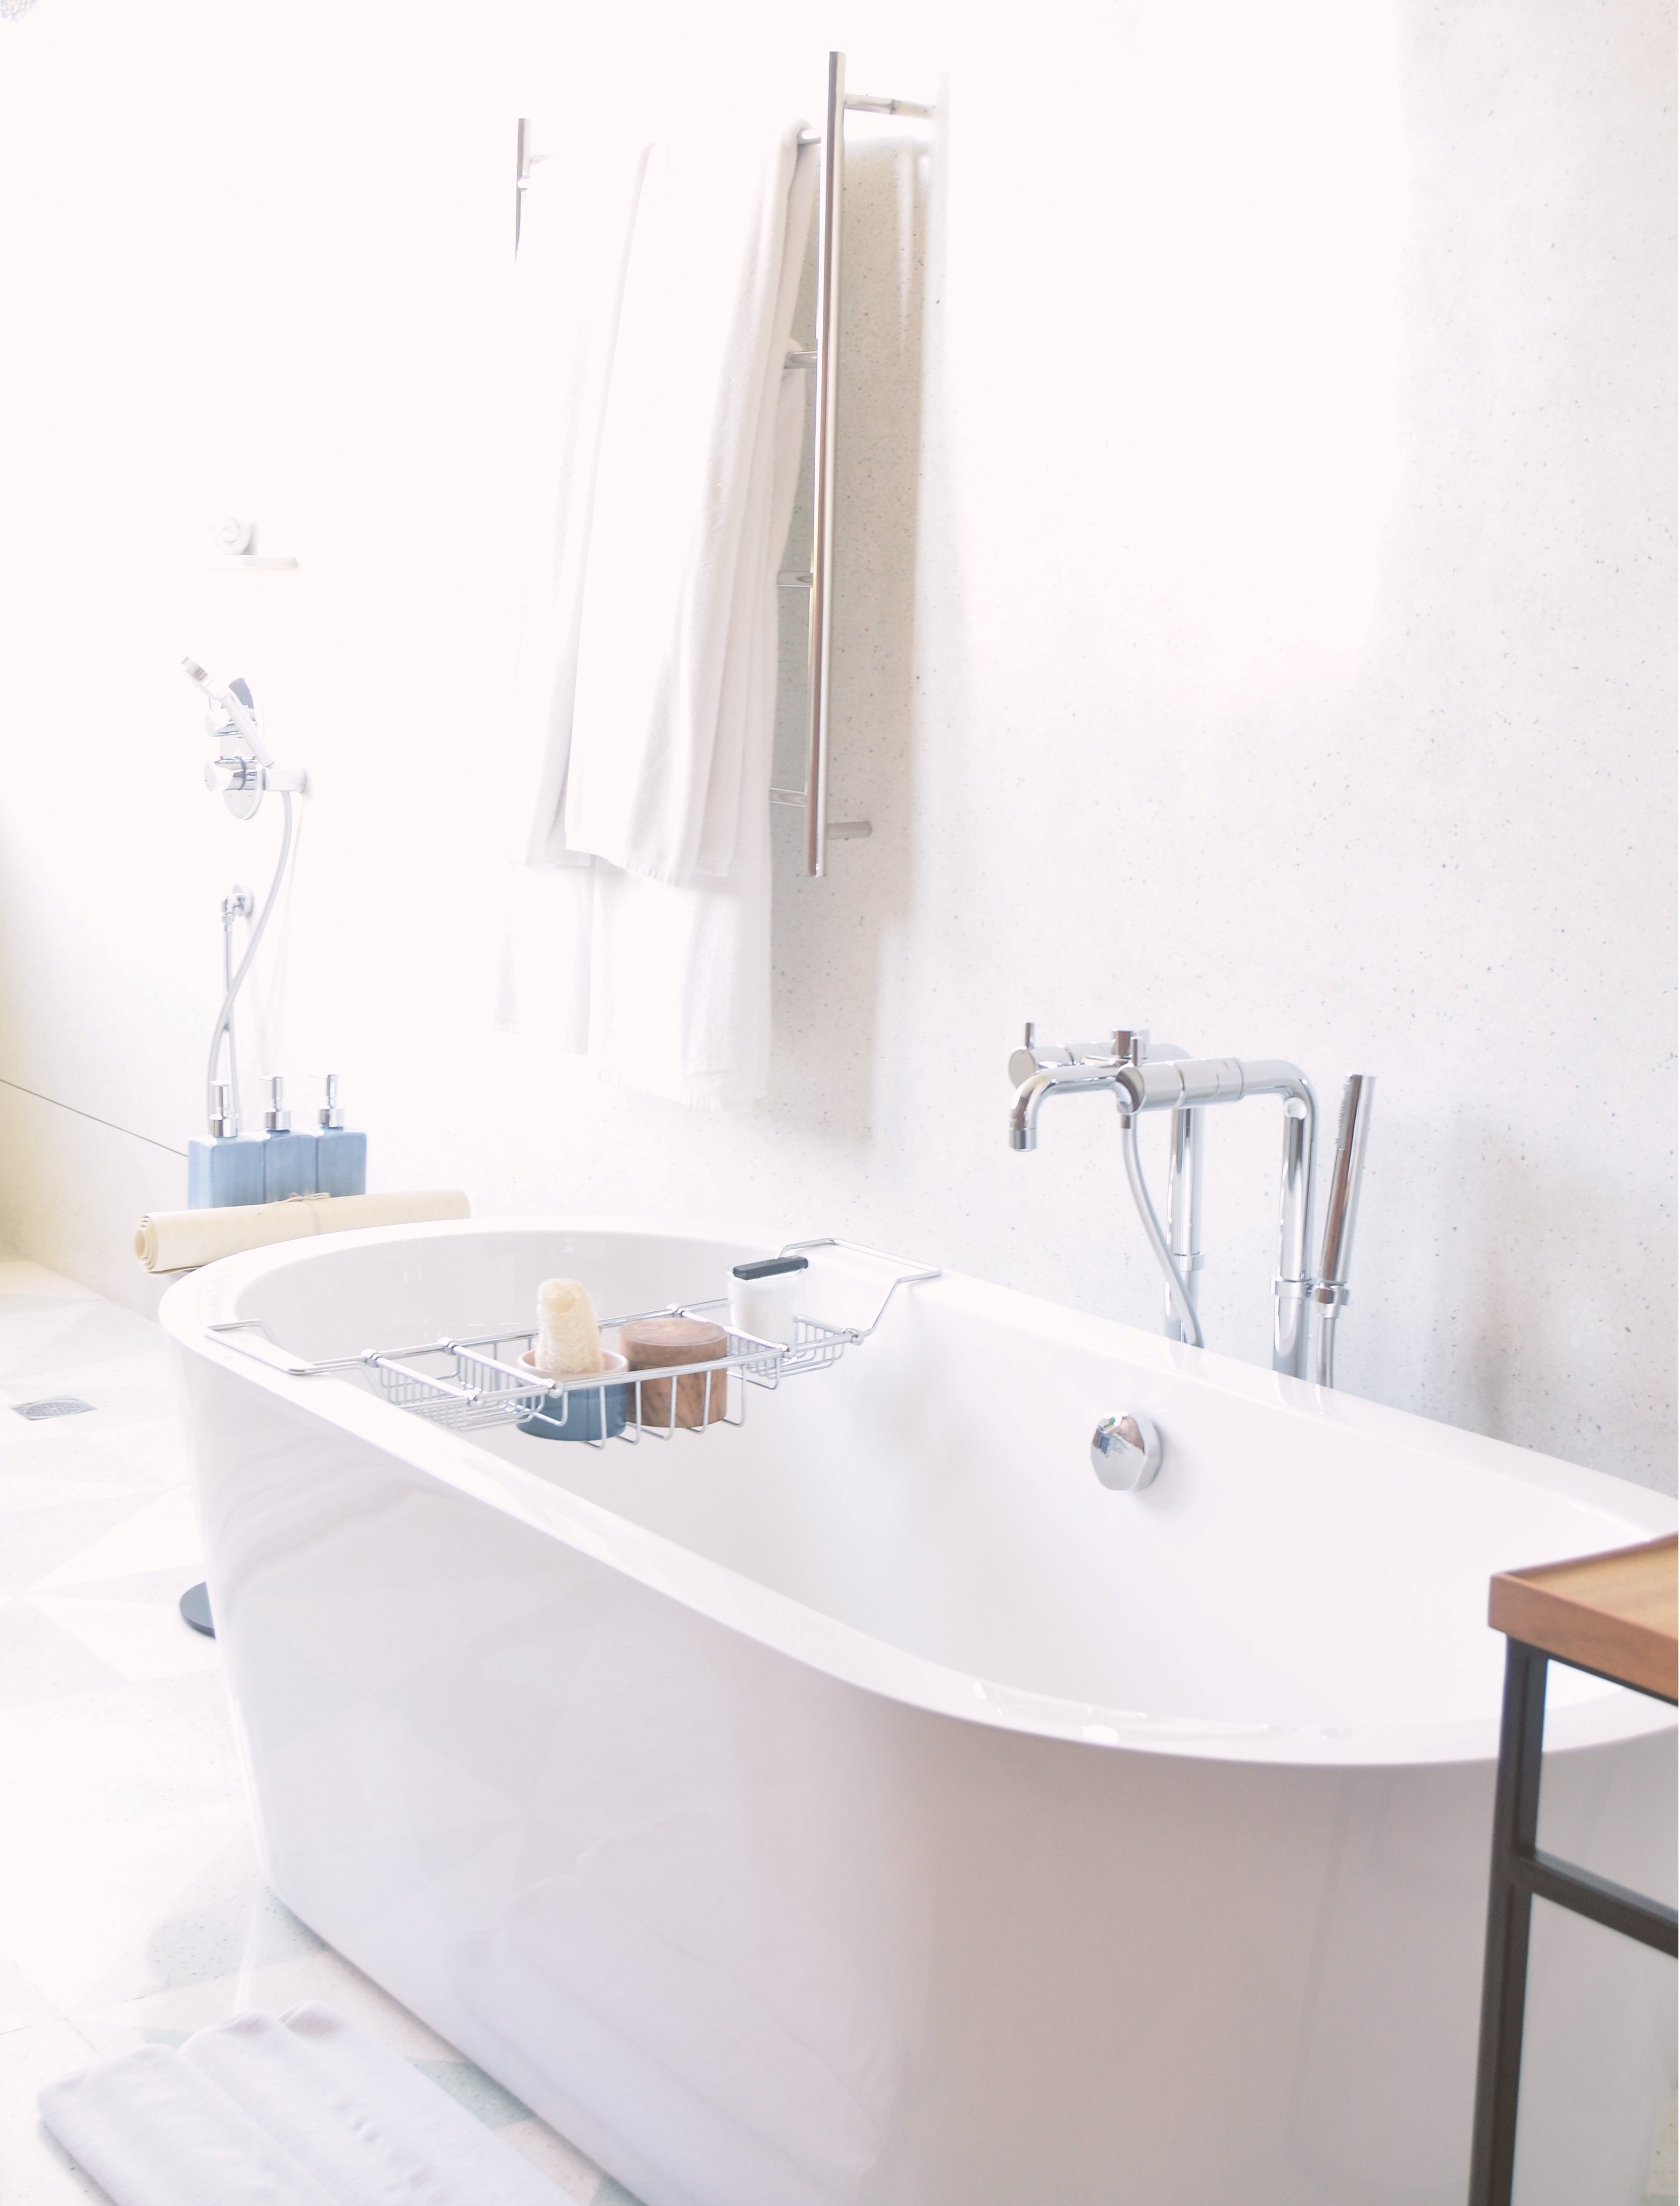 6 Mistakes to Avoid when Designing Your Bathroom